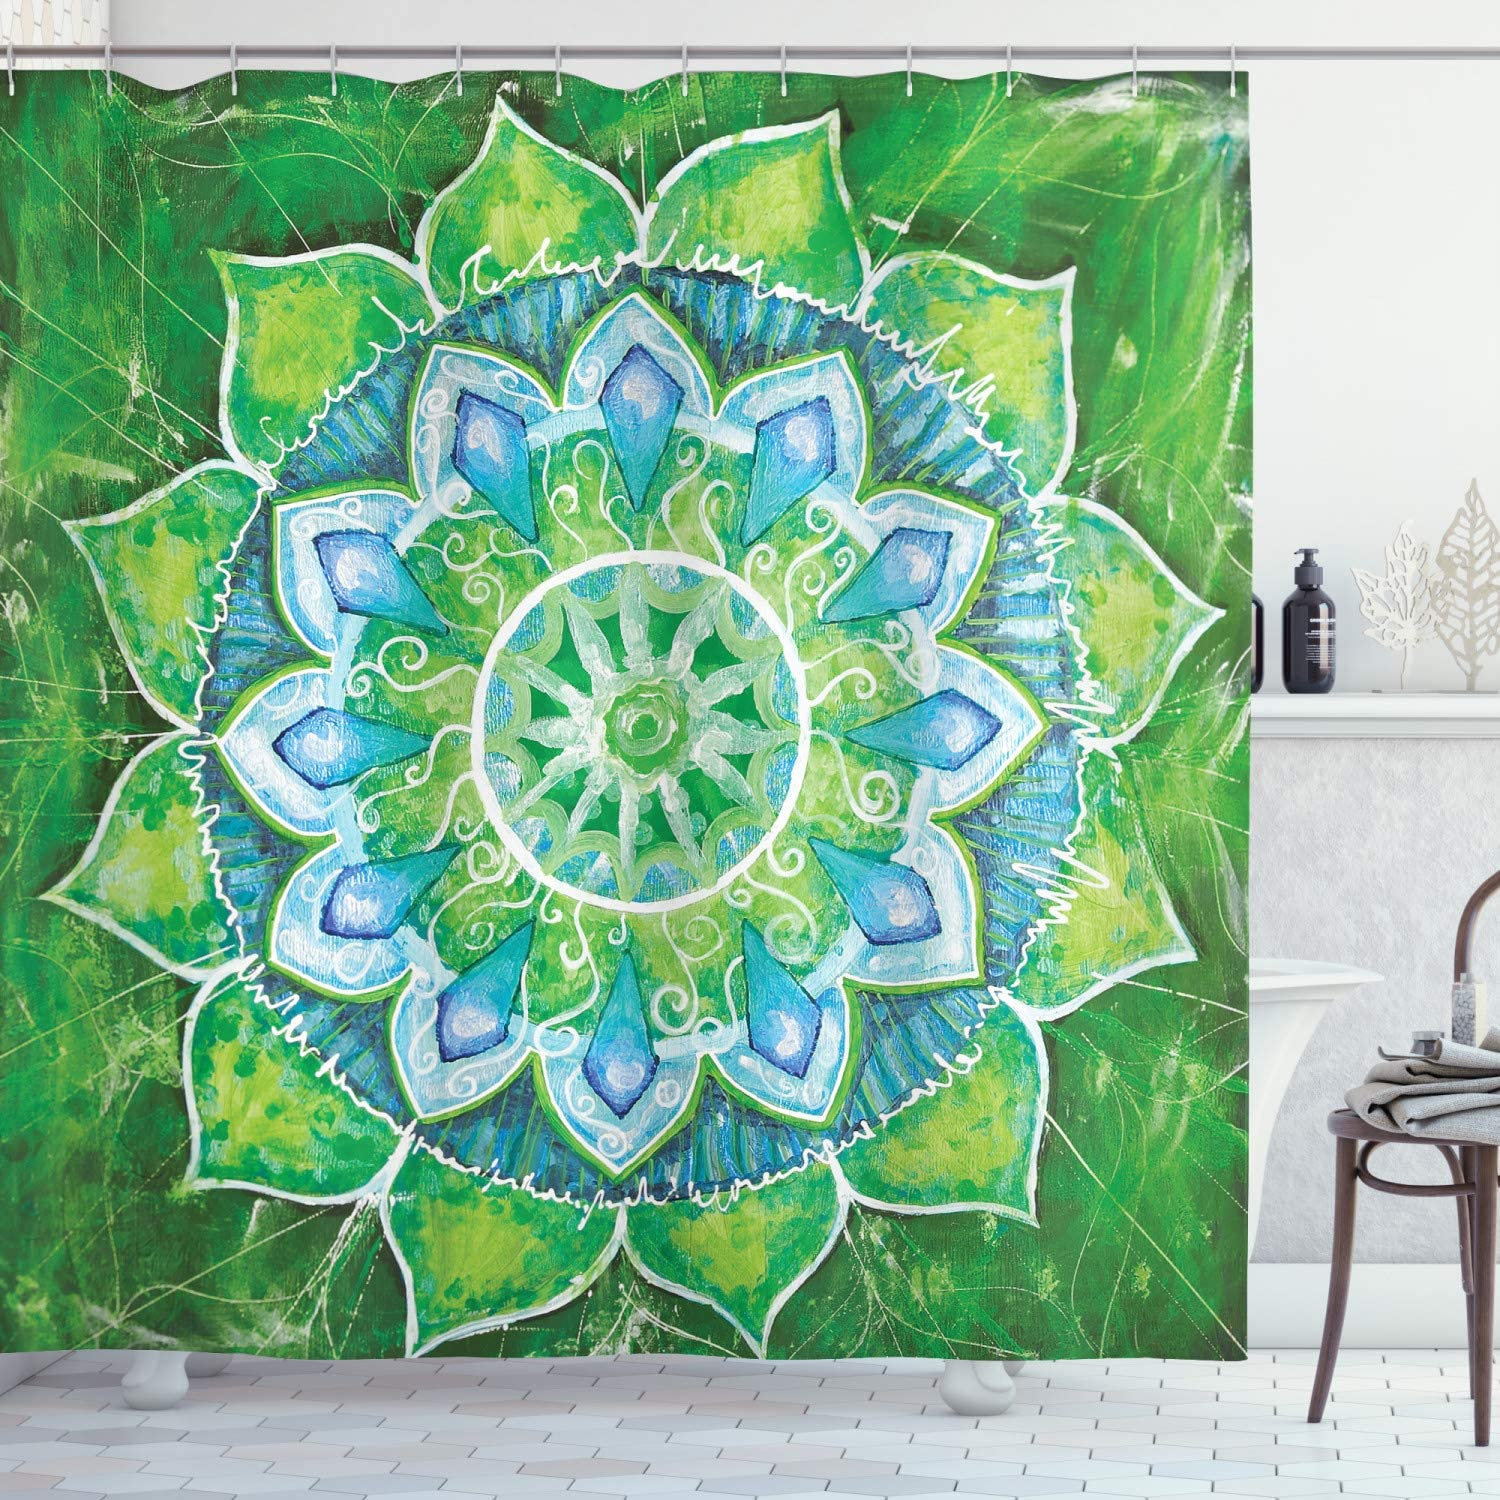 Ambesonne Mandala Shower Curtain Grand Mandala With Leaf Forms Of Nature And Theme Green Boho Style Print Cloth Fabric Bathroom Decor Set With Hooks 75 Long Blue Green Home Kitchen Amazon Com